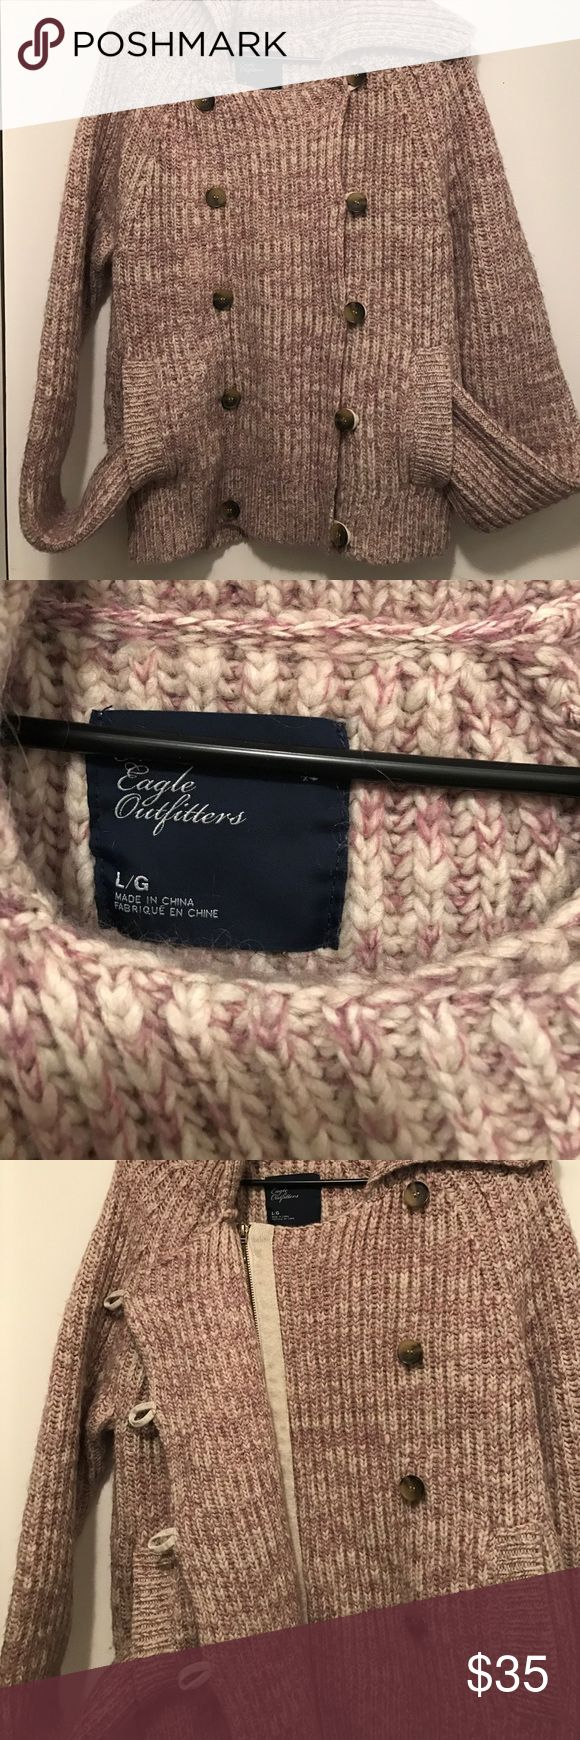 American Eagle Outfitters Sweater Sassy. Chic. Warm. This American Eagle Outfitters Sweater jacket will keep you looking stylish and cozy all season. Like new condition. American Eagle Outfitters Sweaters